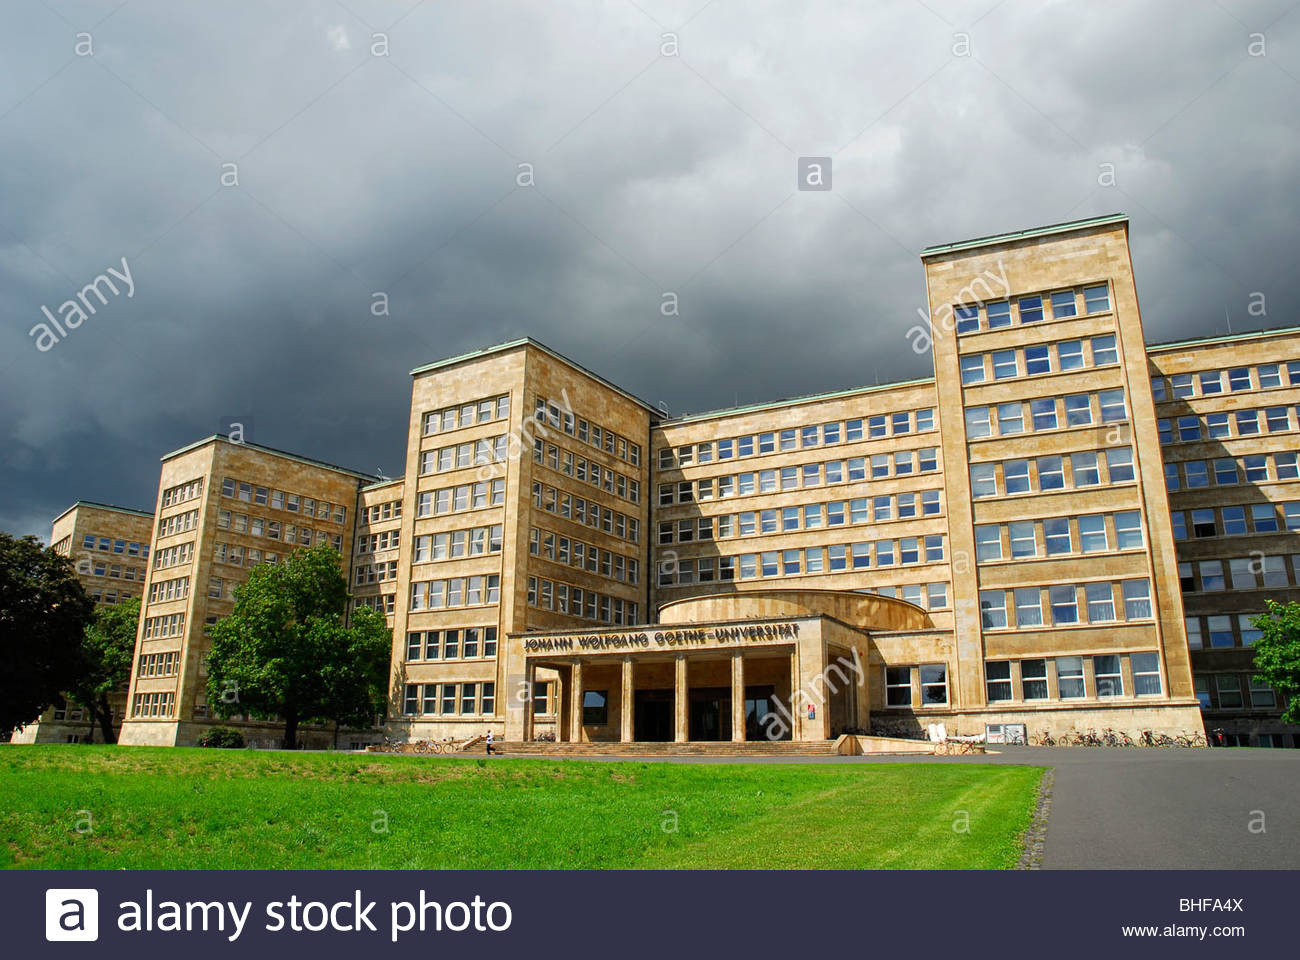 johann wolfgang goethe university frankfurt am main hesse germany stock photo royalty free. Black Bedroom Furniture Sets. Home Design Ideas